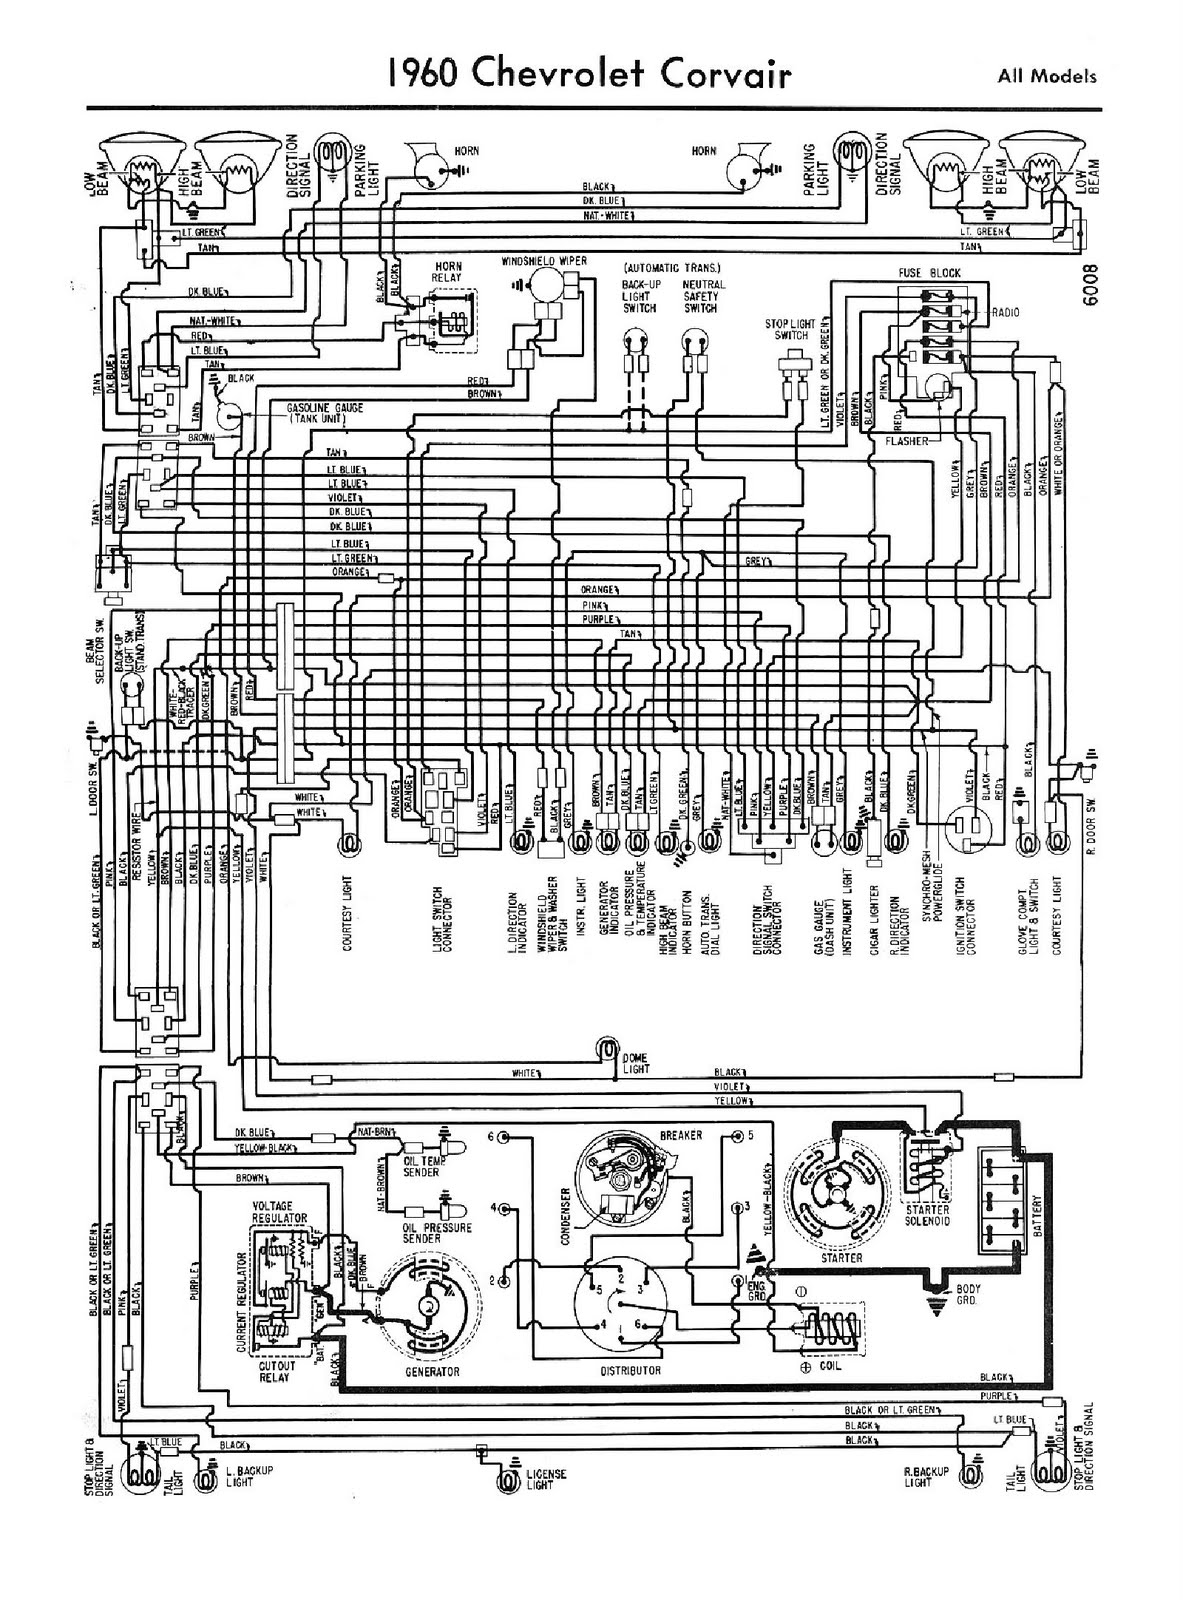 free auto wiring diagram 1960 chevrolet corvair wiring 1960 chevy impala wiring diagram 1960 chevy impala [ 1183 x 1600 Pixel ]